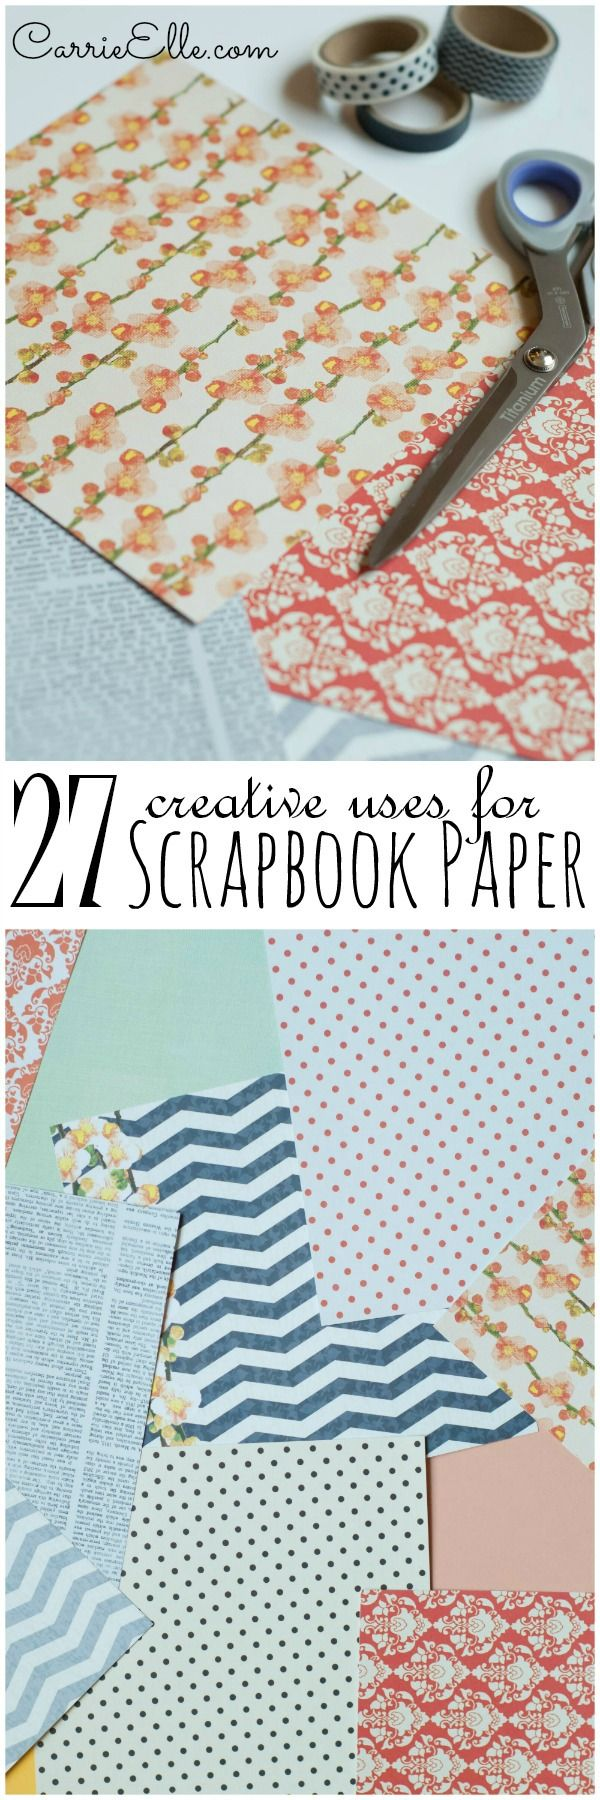 33 creative scrapbook ideas every crafter should know diy projects - 27 Creative Uses For Scrapbook Paper That Don T Involve Scrapbooking I Have Tons Of Scrapbook Paper Laying Around The House I Can T Wait To Try Some Of